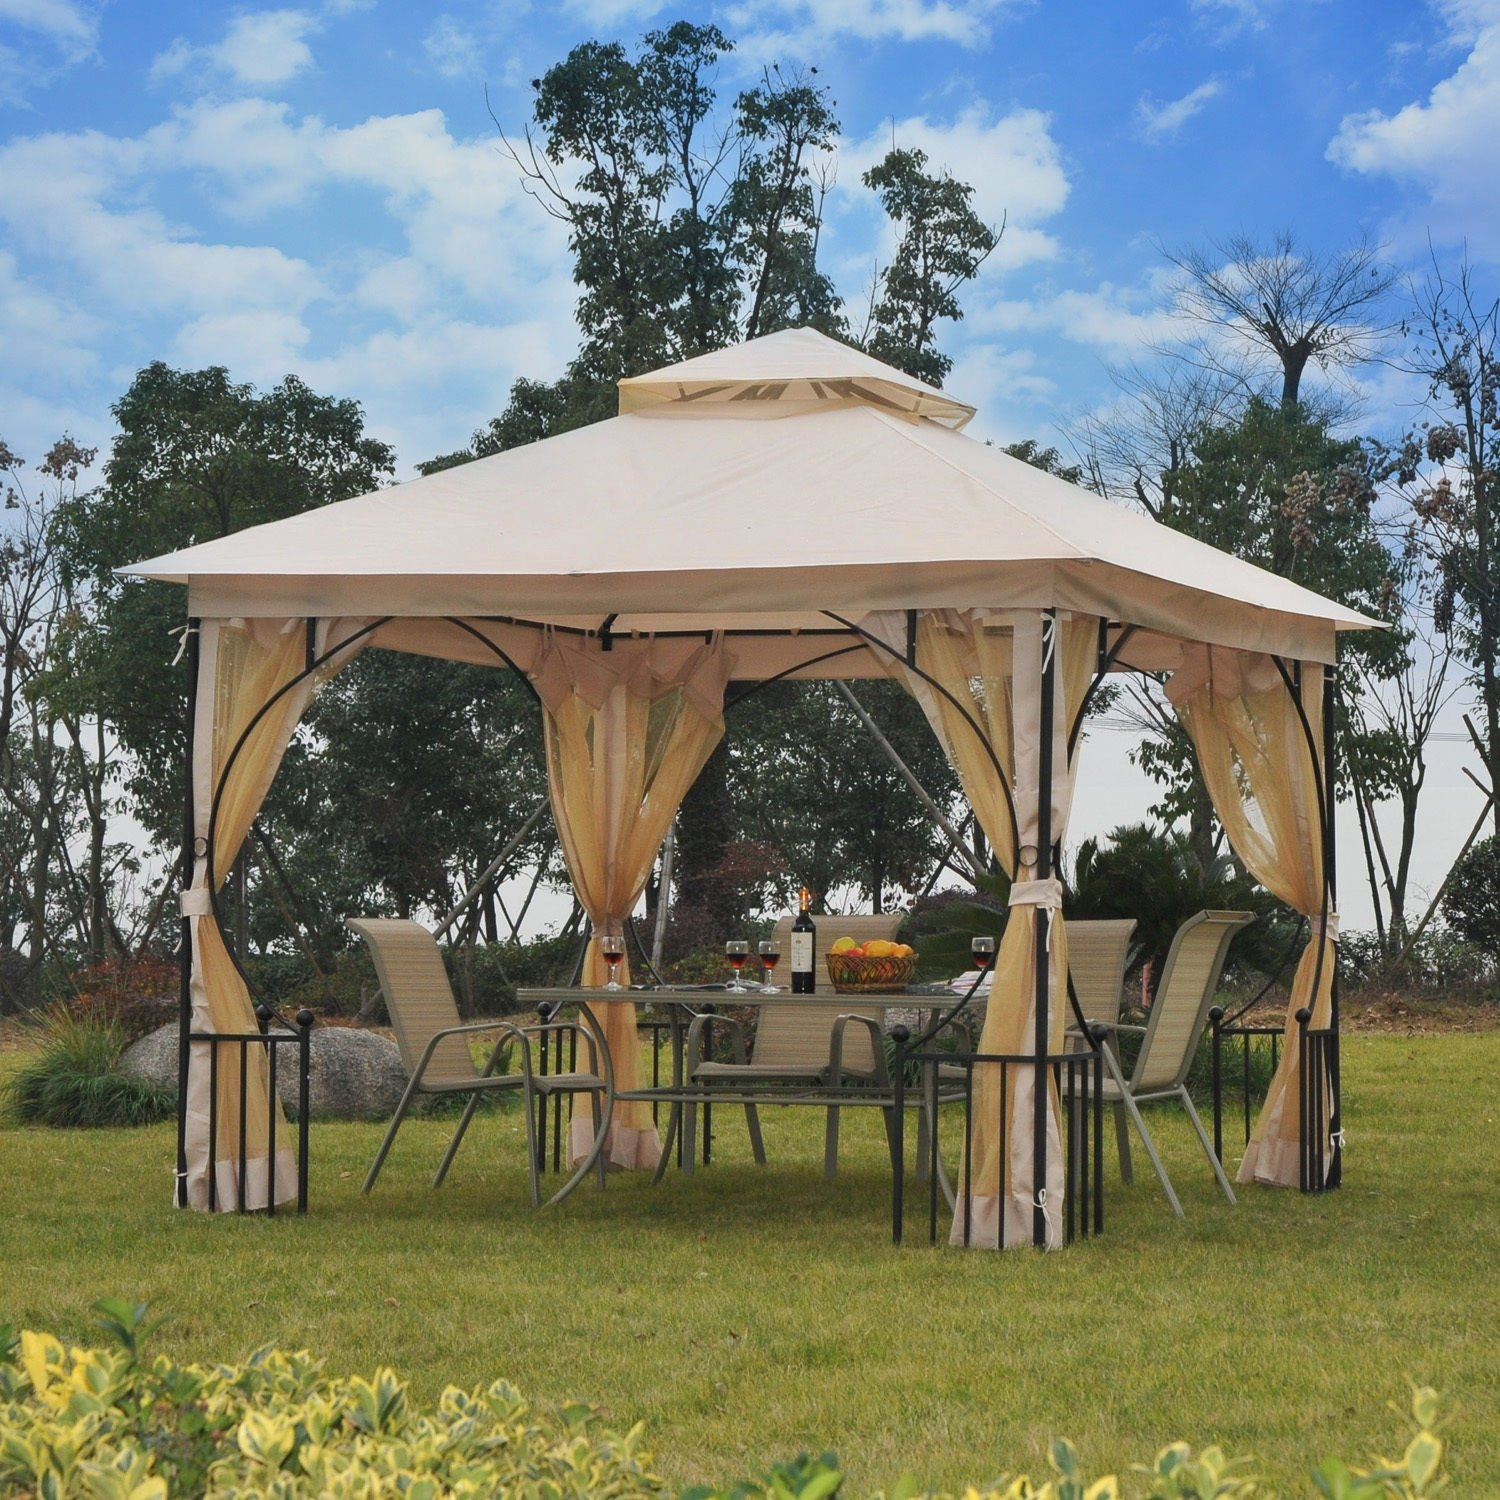 New MTN-G 10'x10' Gazebo Canopy Net Metal Outdoor Garden Patio Party Tent Shelter by MTN Gearsmith